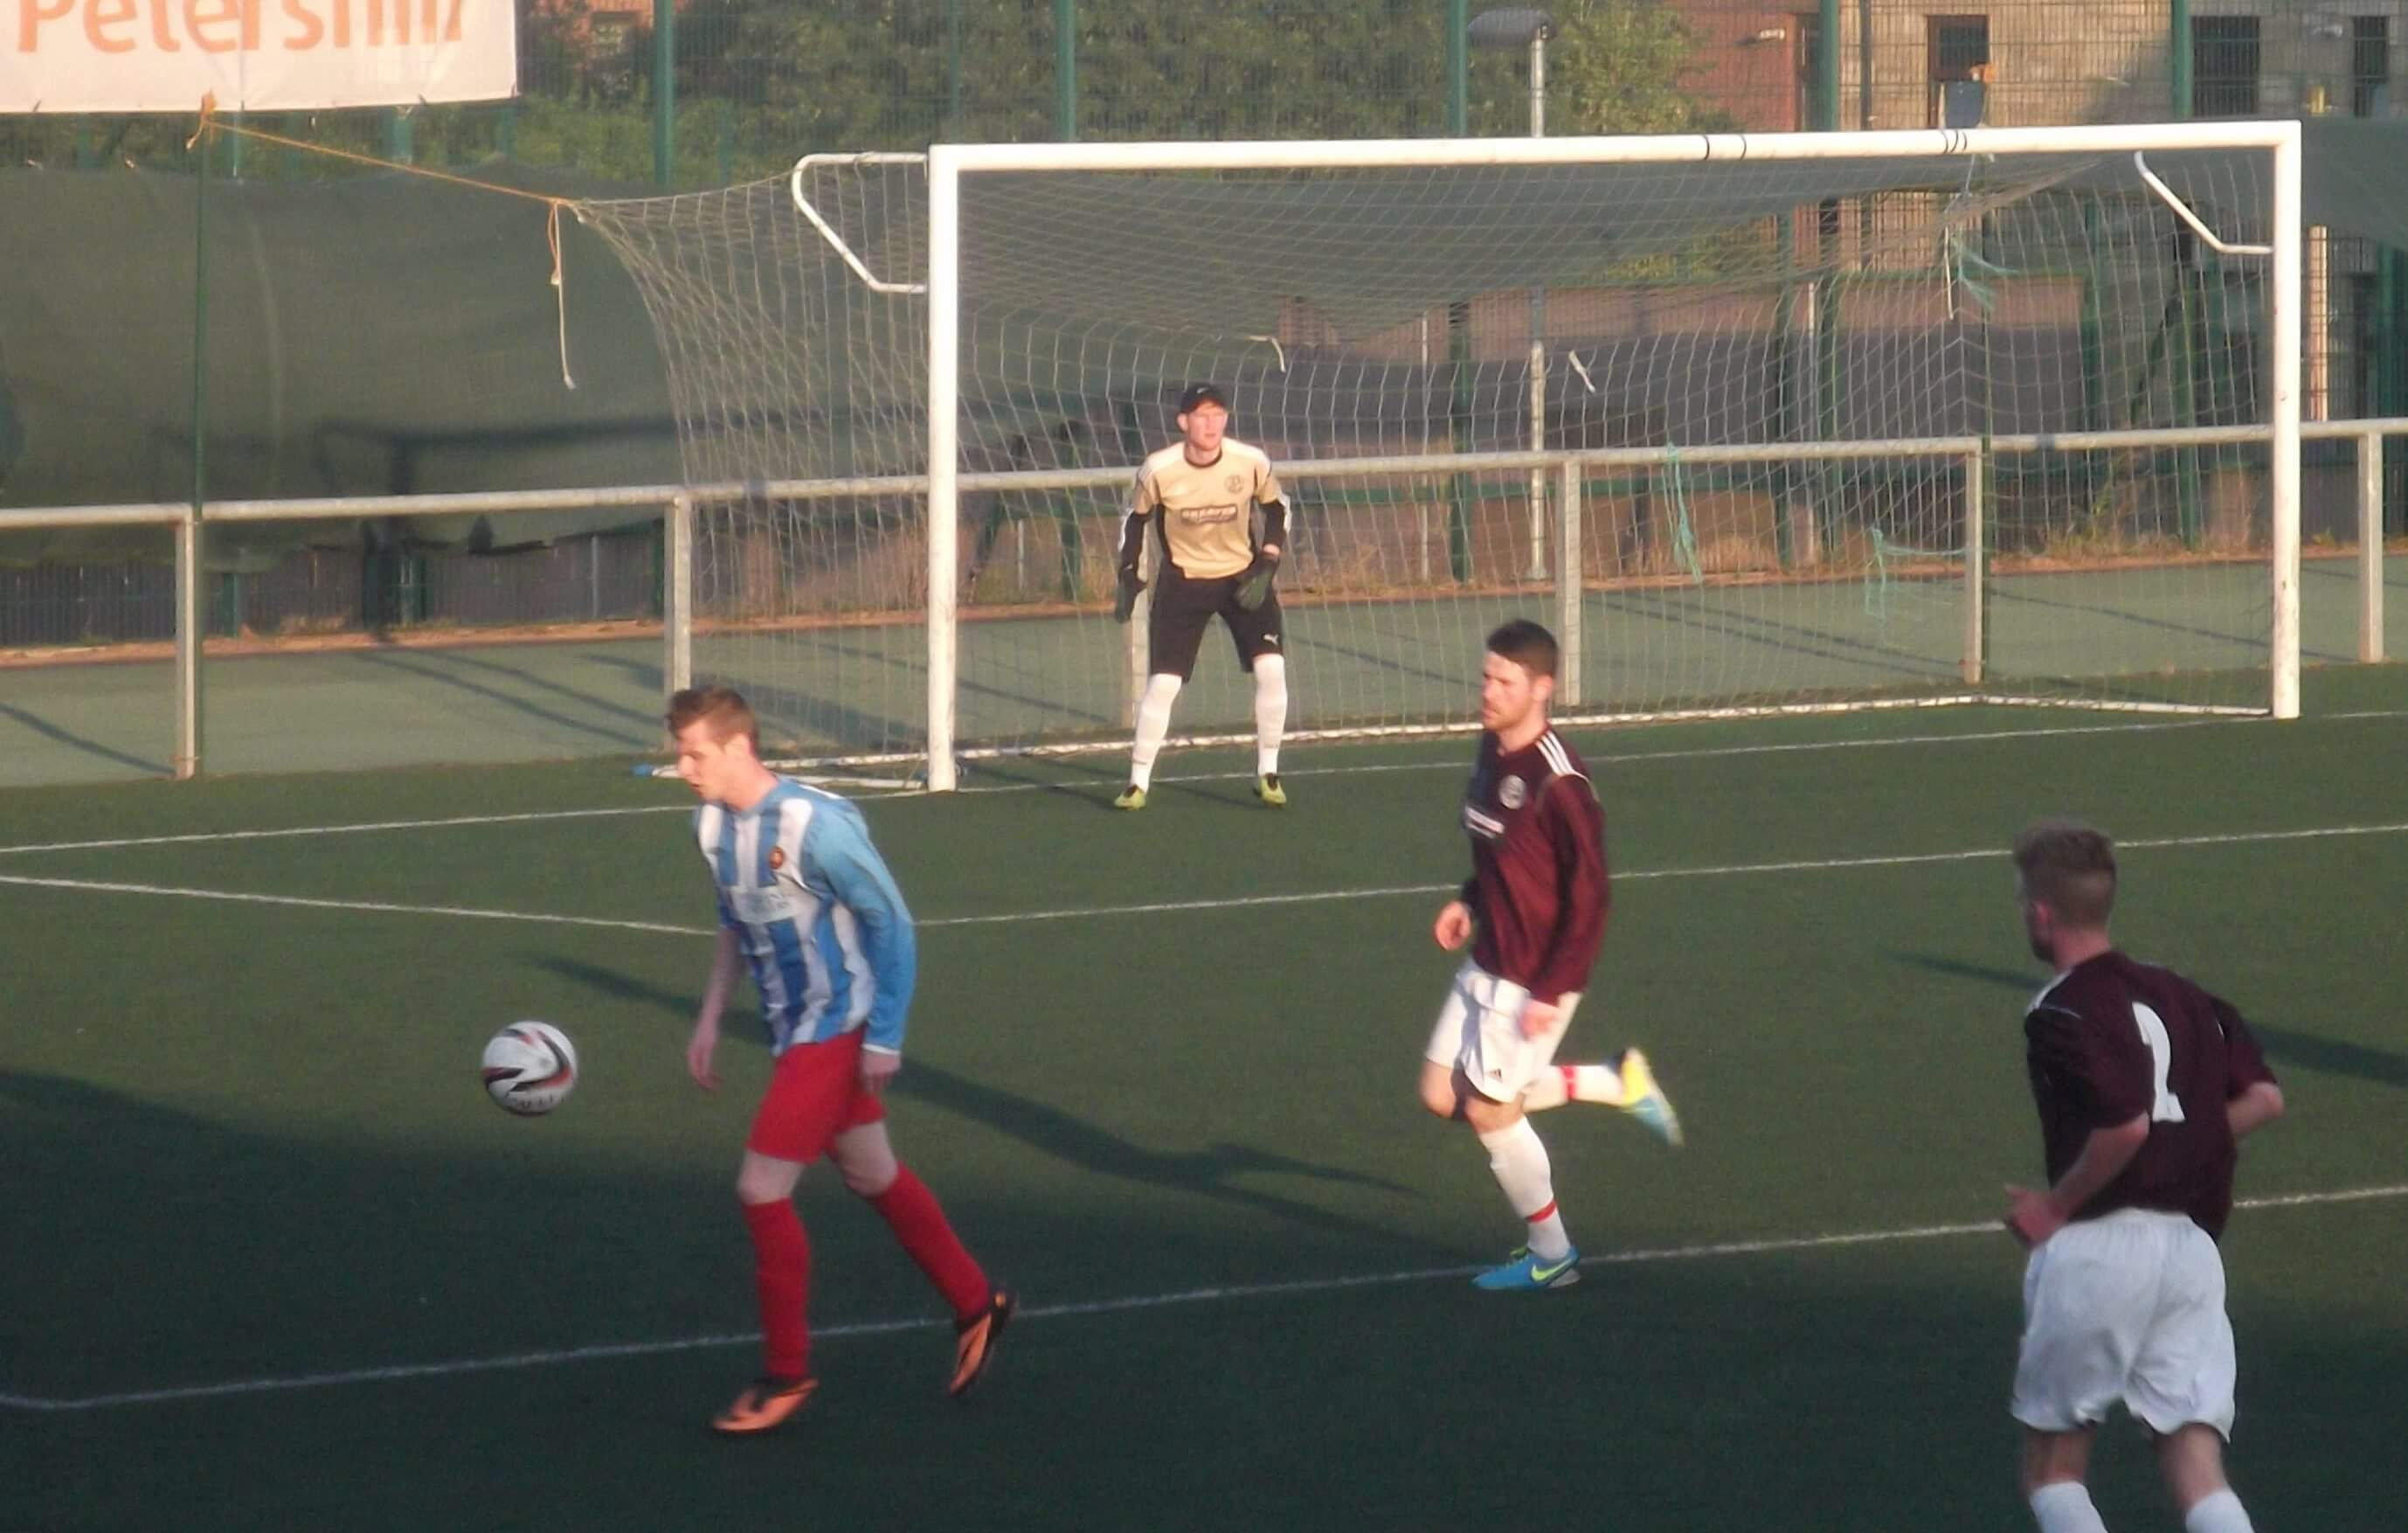 Petershill v Larkhall Thistle 5